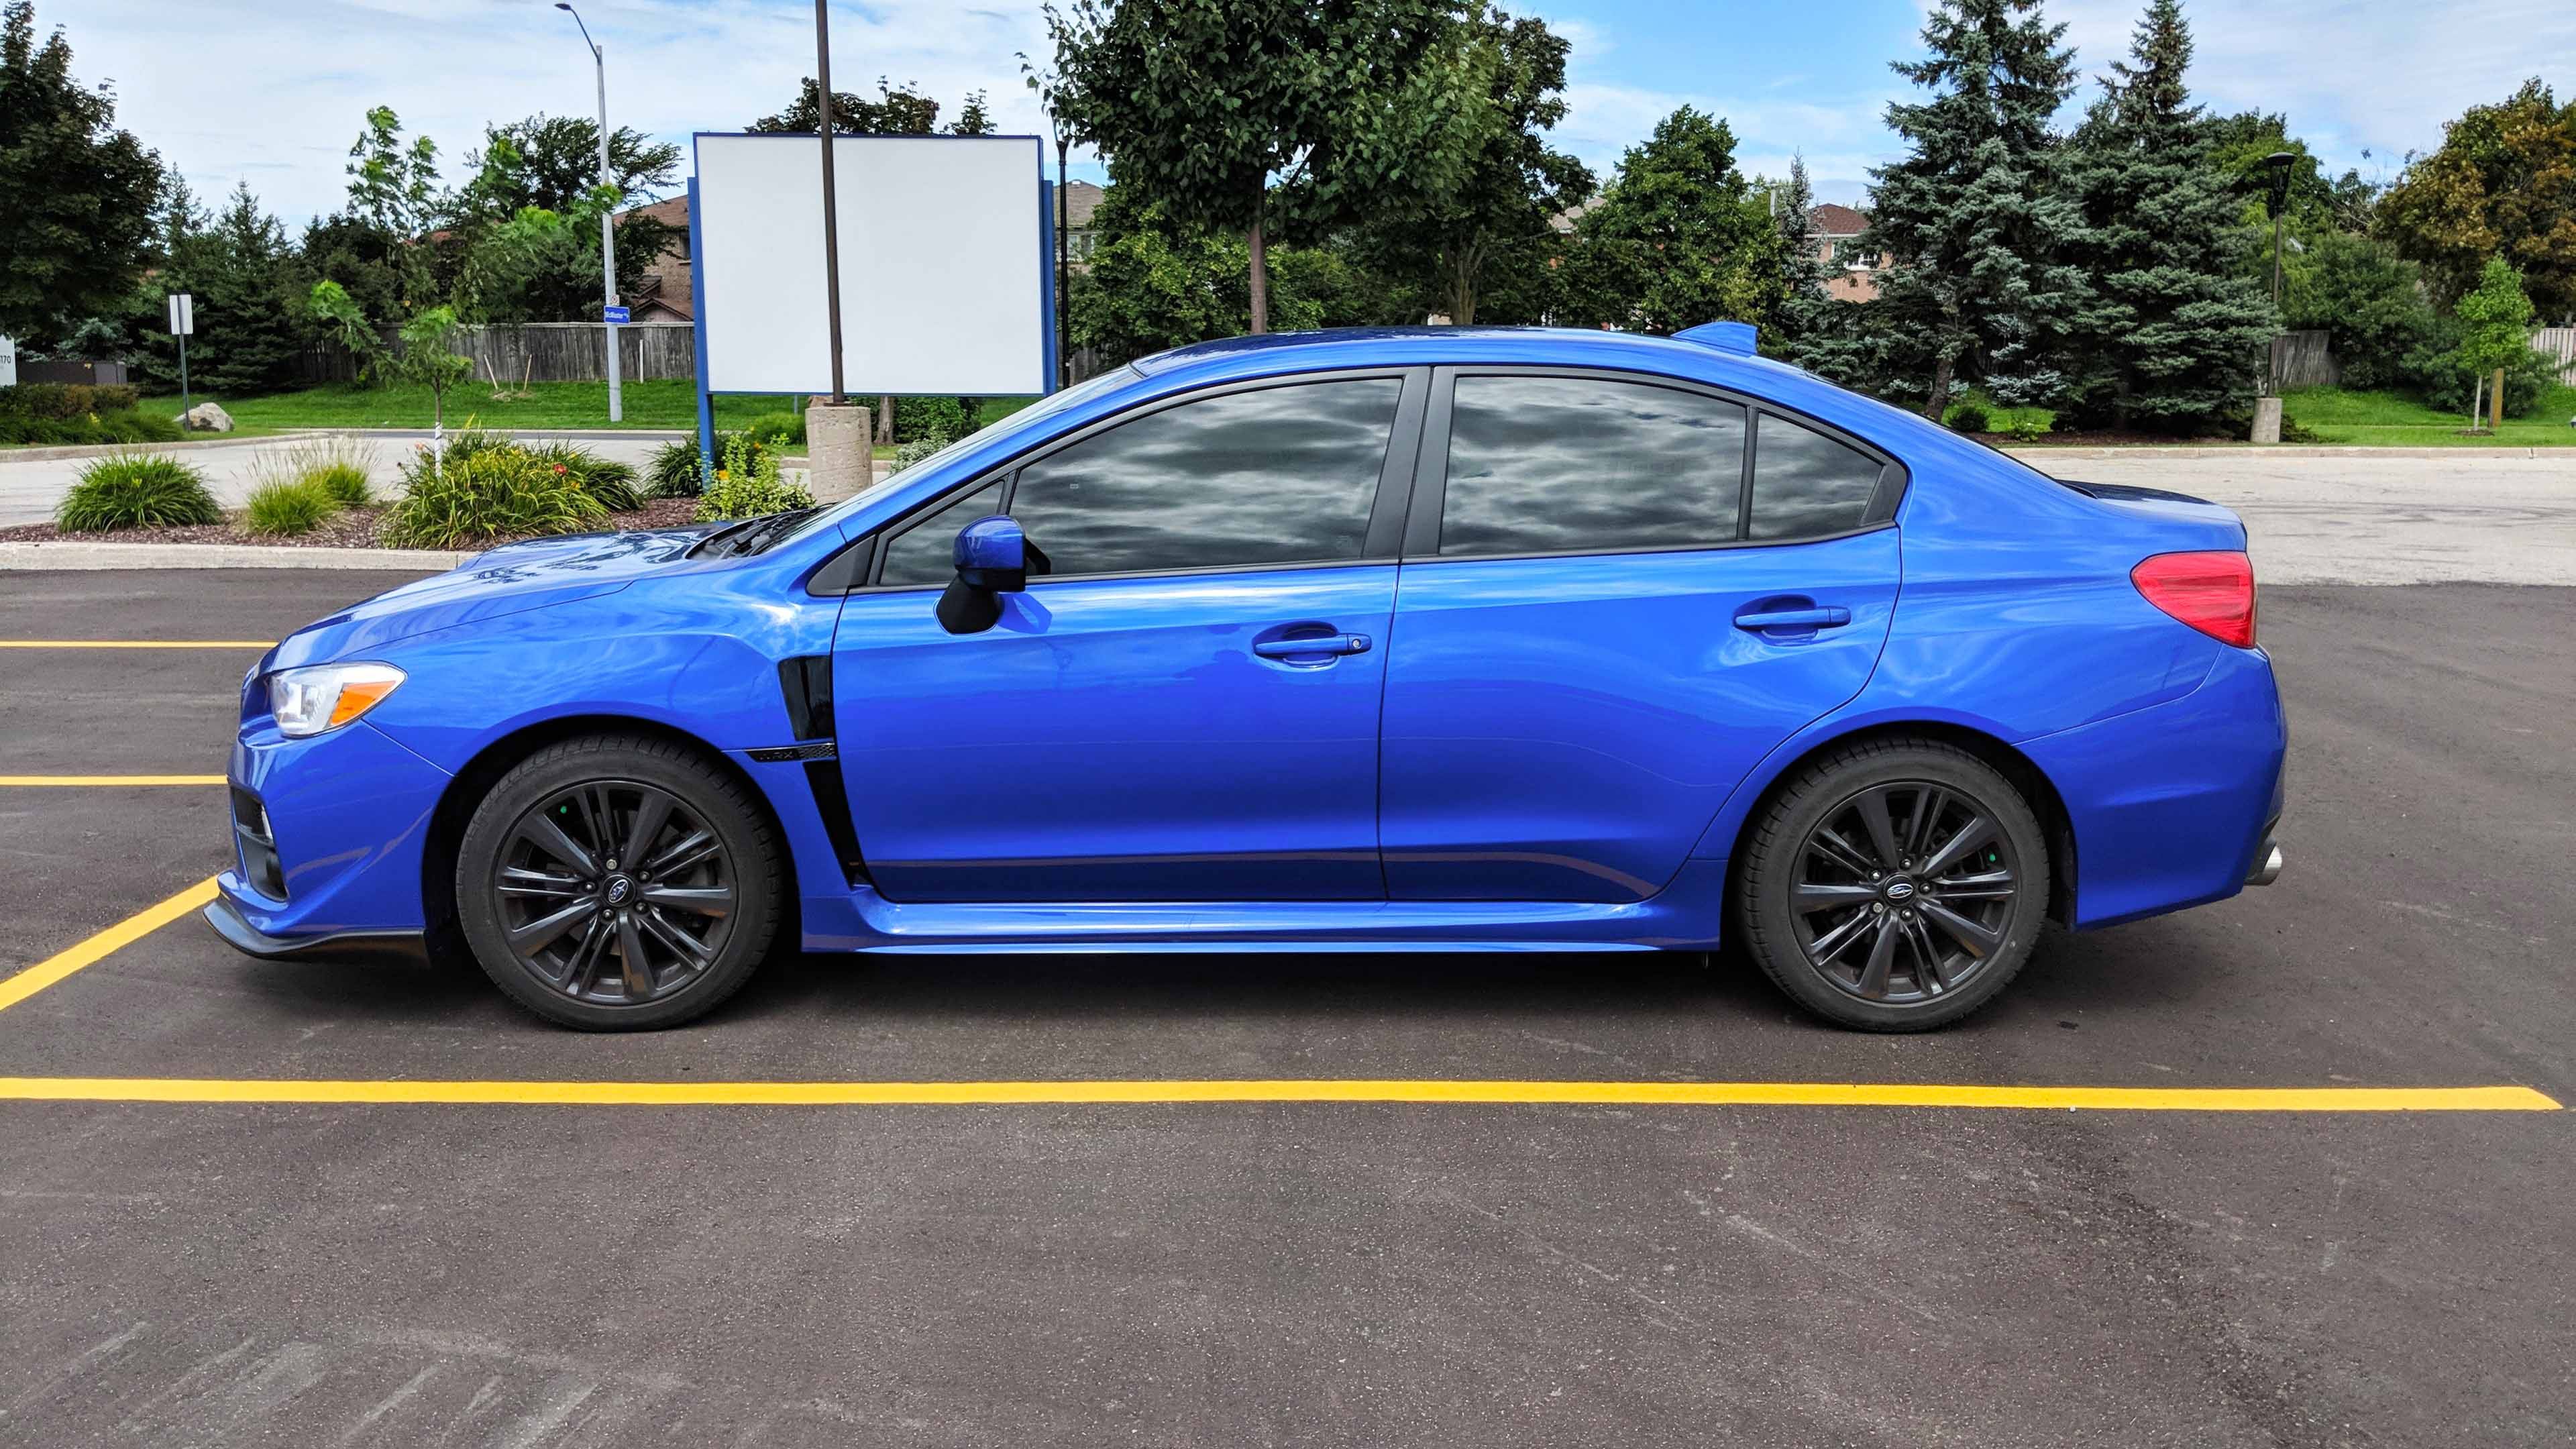 Subaru STi window tint 20%